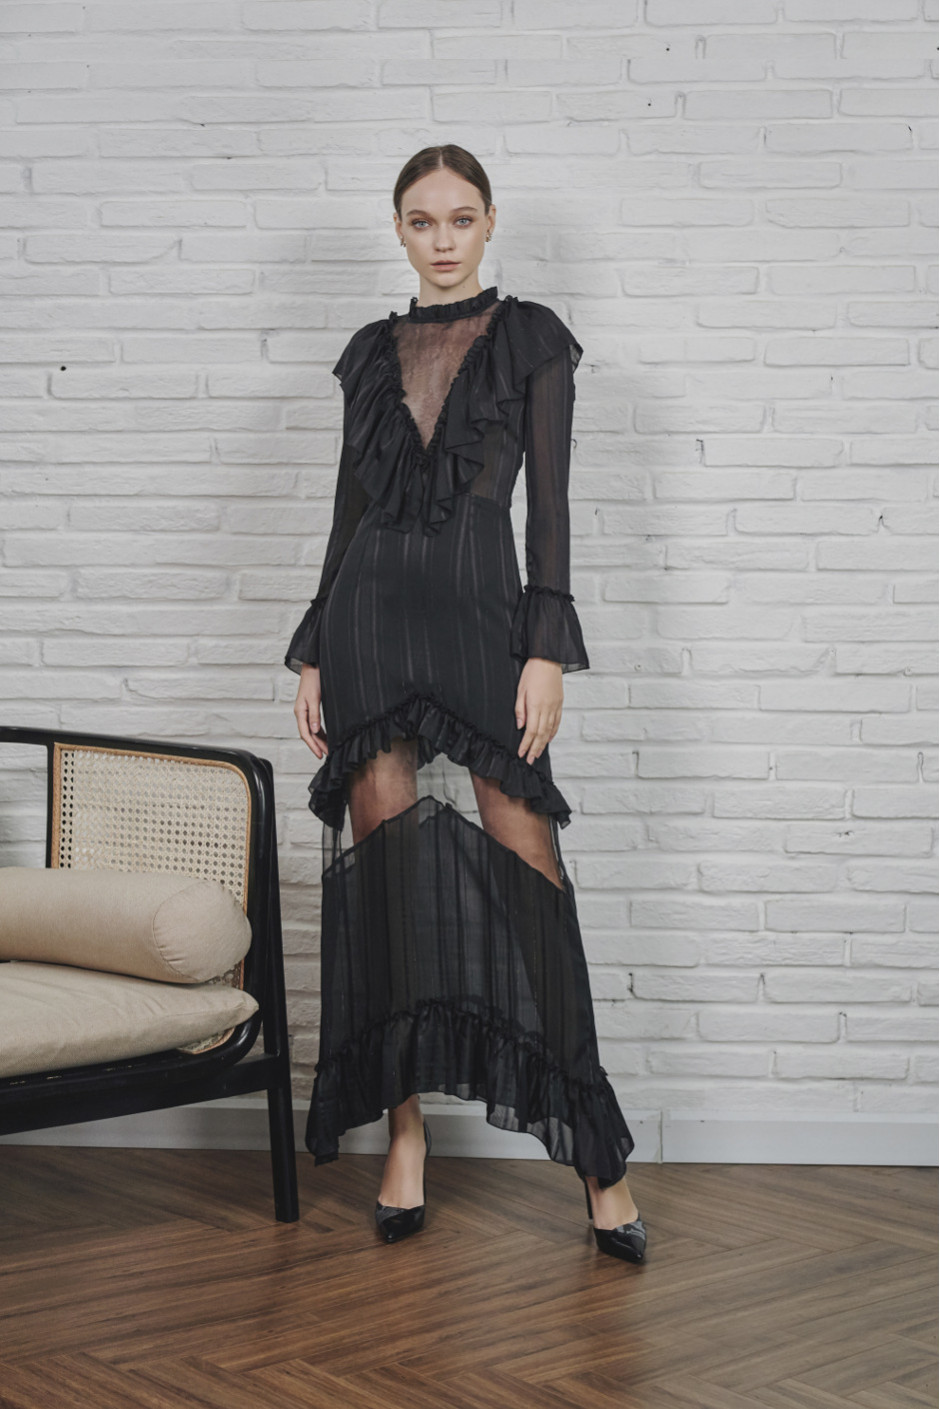 Black Irena dress